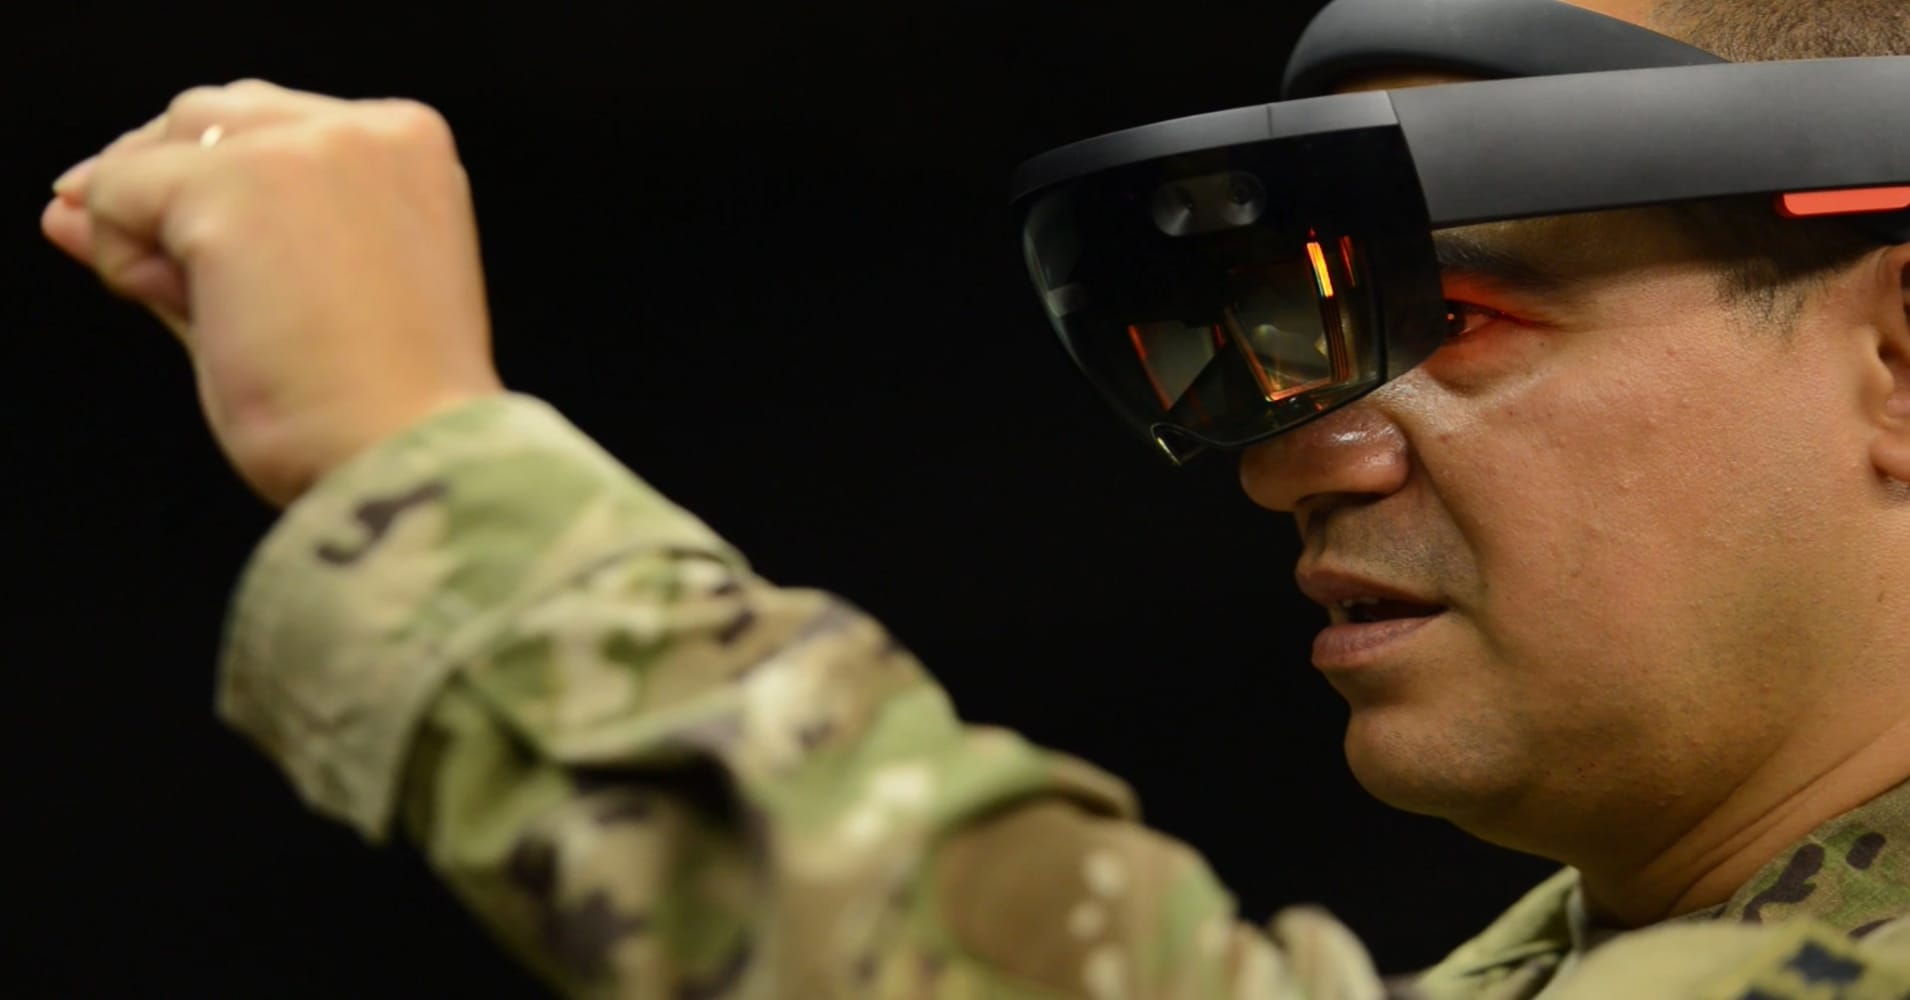 Virtual reality training by companies like Microsoft is saving lives, millions of dollars, and ensuring the future of mixed reality